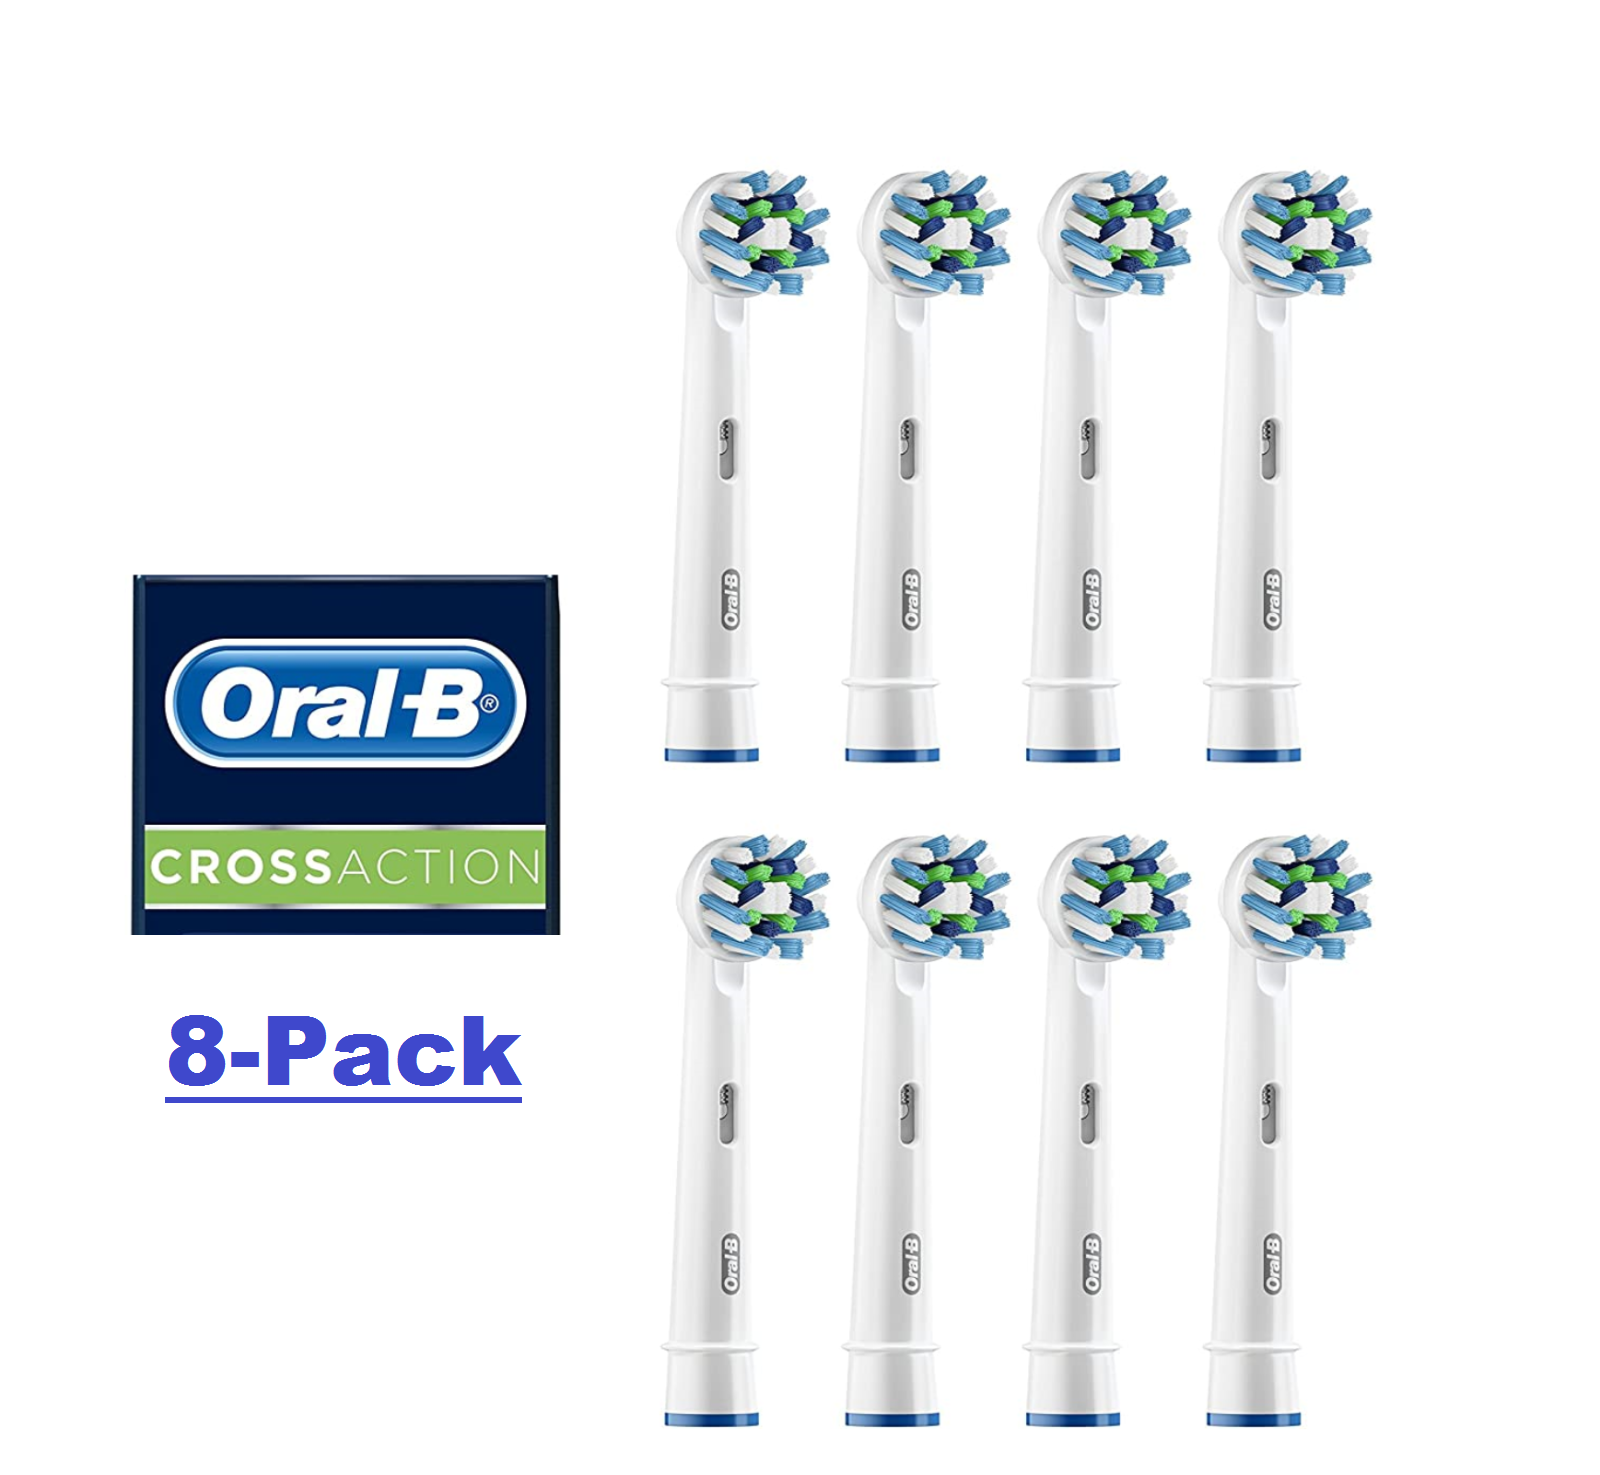 Oral-B Cross Action  Electric Toothbrush Replacement Brush Heads 8 Pack